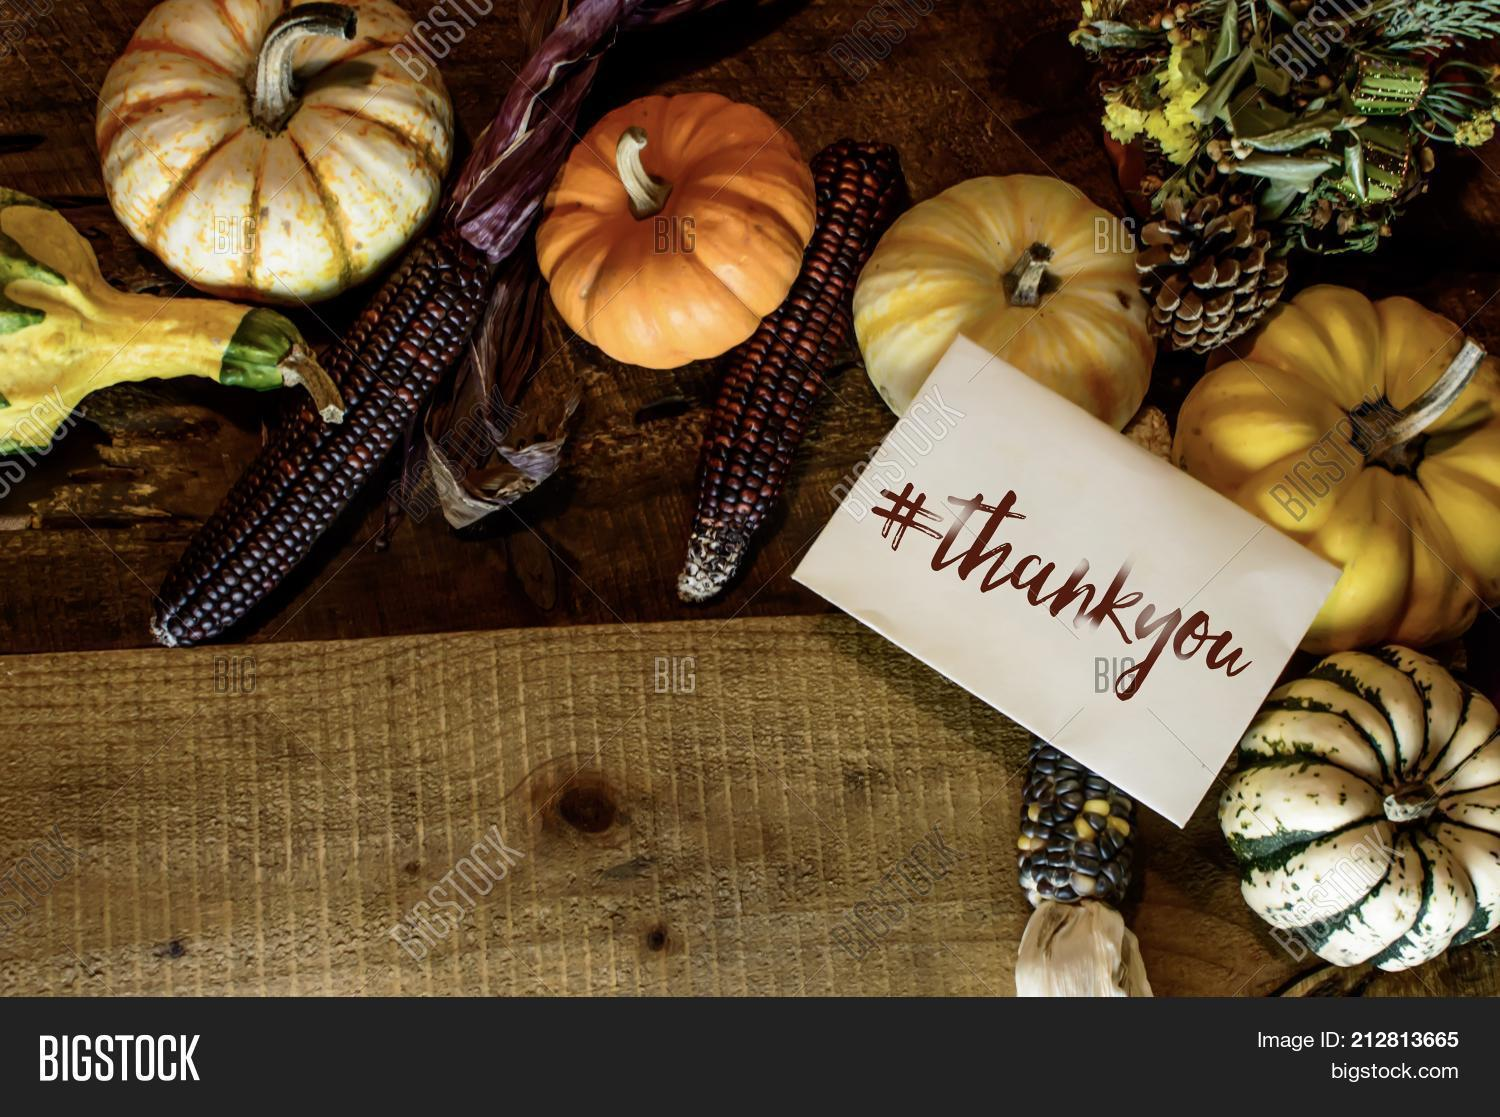 Happy Thanksgiving Day Card Writing With Hashtag Thankyou Thank You As Thanks For Clients